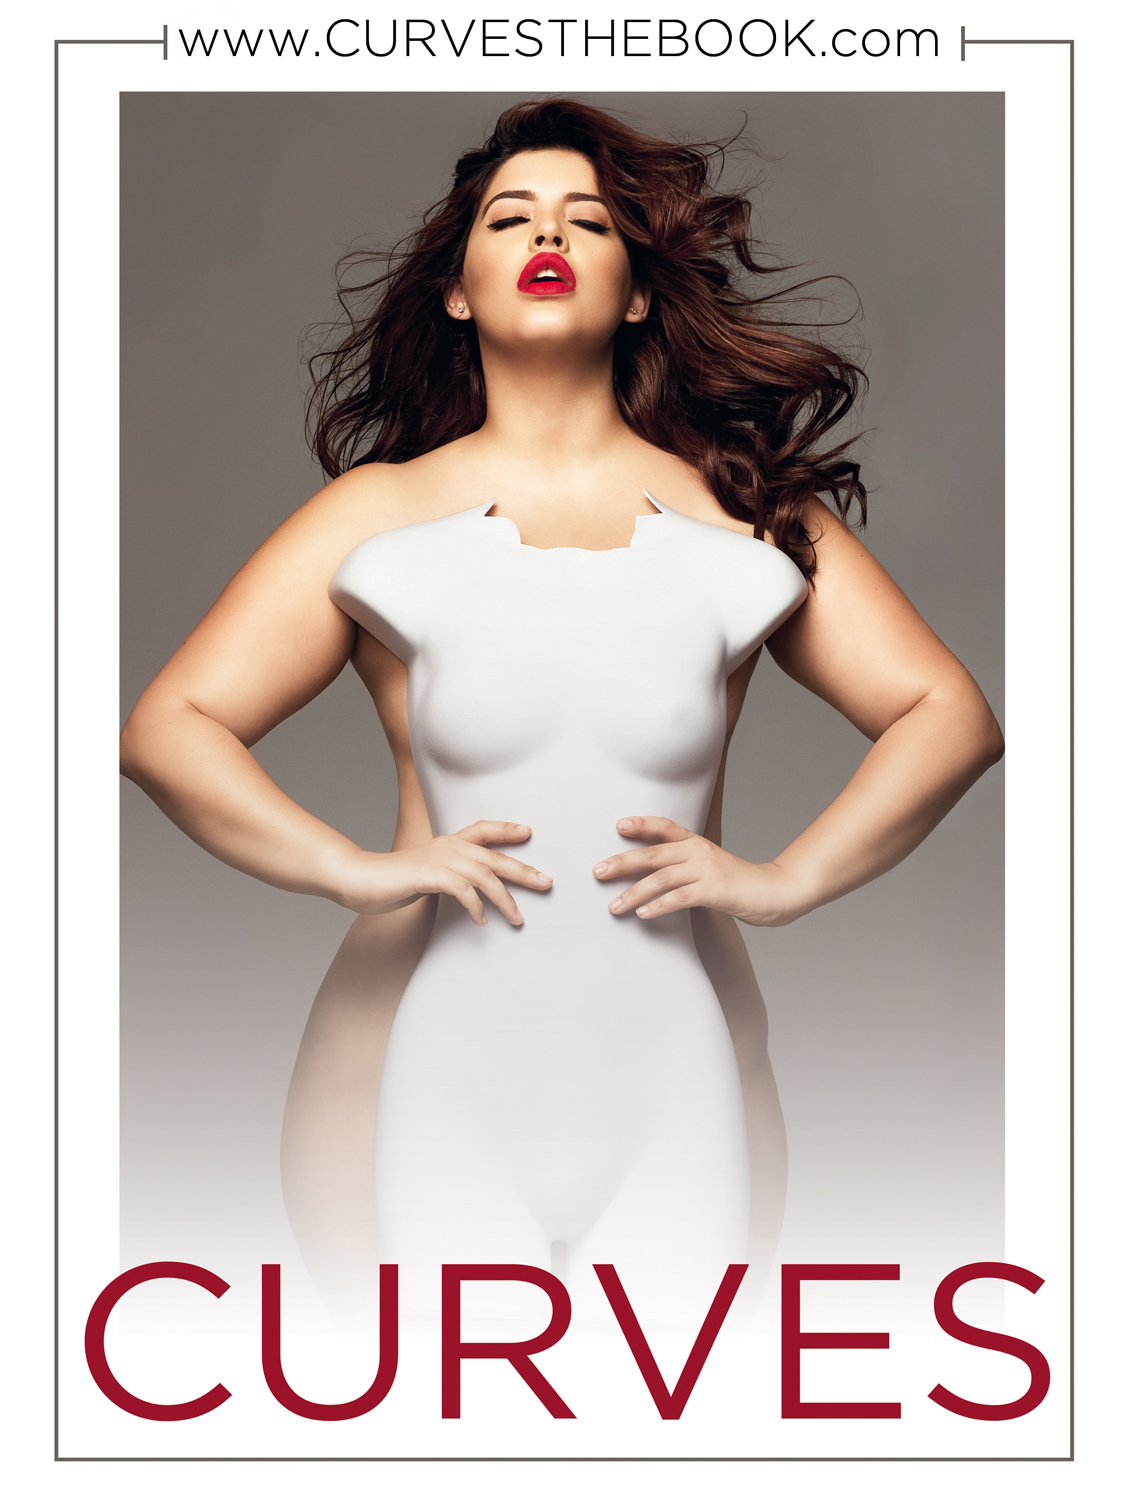 CURVES the art book